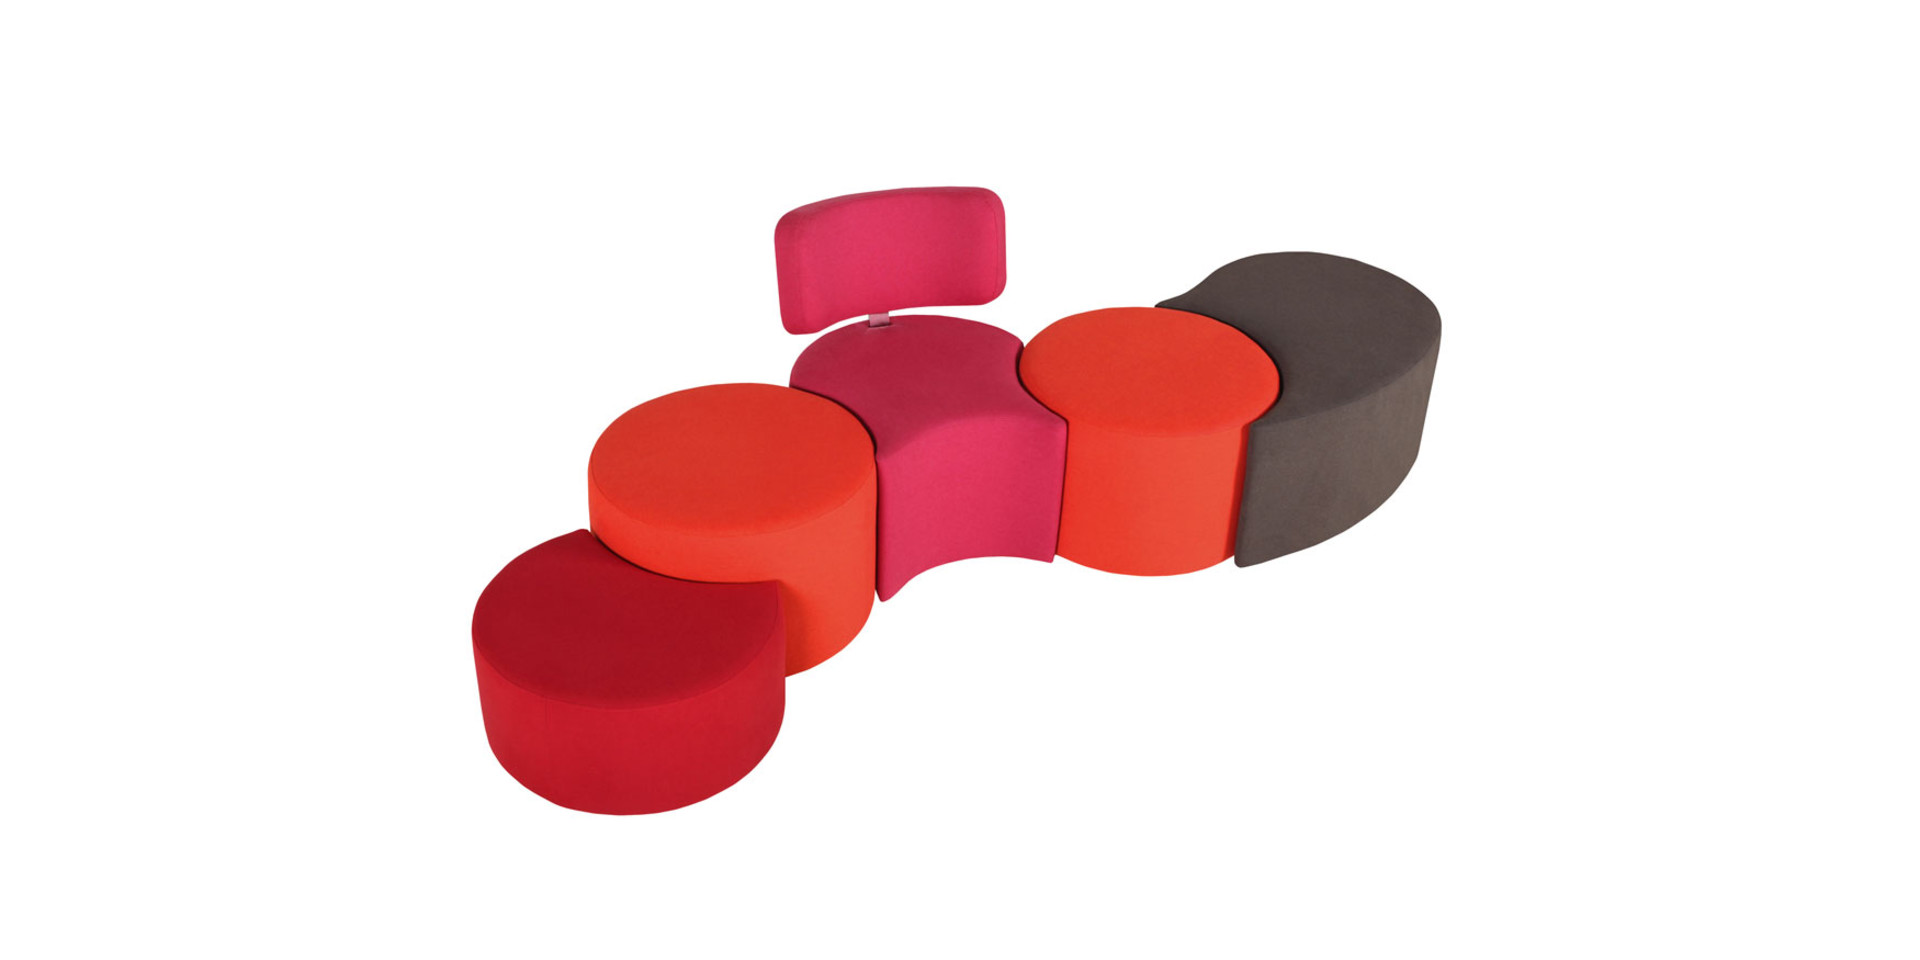 sits-mokka-pouf-footstool_panno2011_red_panno2036_orange_panno1008_brown_mogani6_pink_3_0